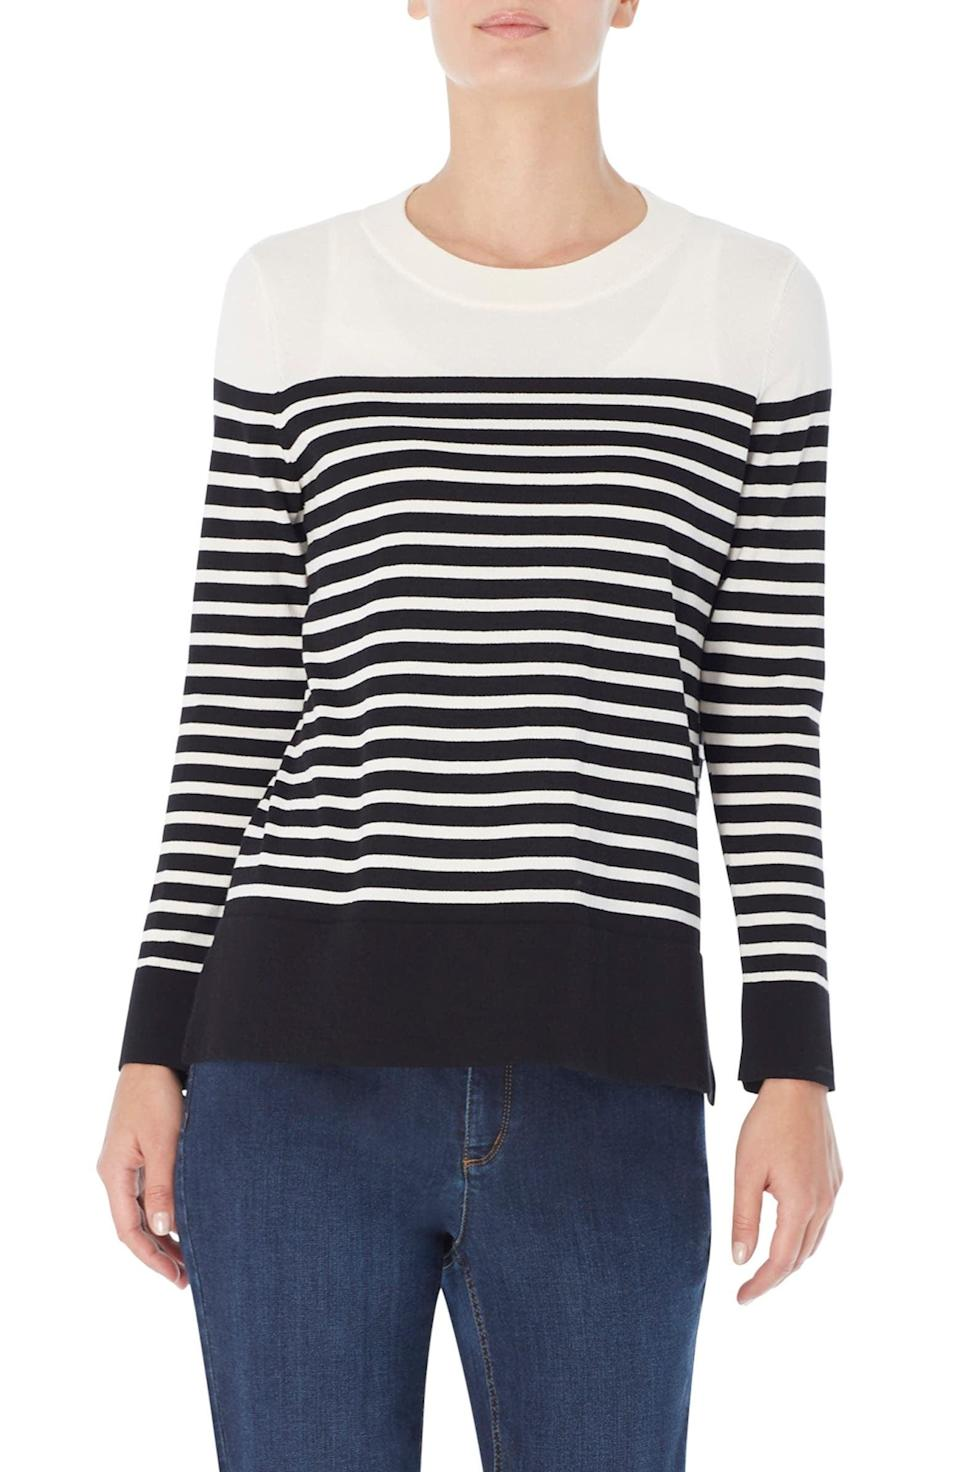 """<p>A striped sweater will never go out of style. This <a href=""""https://www.popsugar.com/fashion/top-rated-sweaters-from-nordstrom-48516965?stream_view=1&amp;bonsai=product_ckkevdufe1dxu1dai9jvg1yuv&amp;bonsaiRedirect=https%253A%252F%252Fwww.popsugar.com%252Ffashion%252Ftop-rated-sweaters-from-nordstrom-48516965%253Fstream_view%253D1&amp;bonsaiSource=link&amp;bonsaiType=links&amp;isExternal=true"""" class=""""link rapid-noclick-resp"""" rel=""""nofollow noopener"""" target=""""_blank"""" data-ylk=""""slk:Jones New York Stripe Crewneck Sweater"""">Jones New York Stripe Crewneck Sweater</a> ($100) is classic and elegant.</p>"""